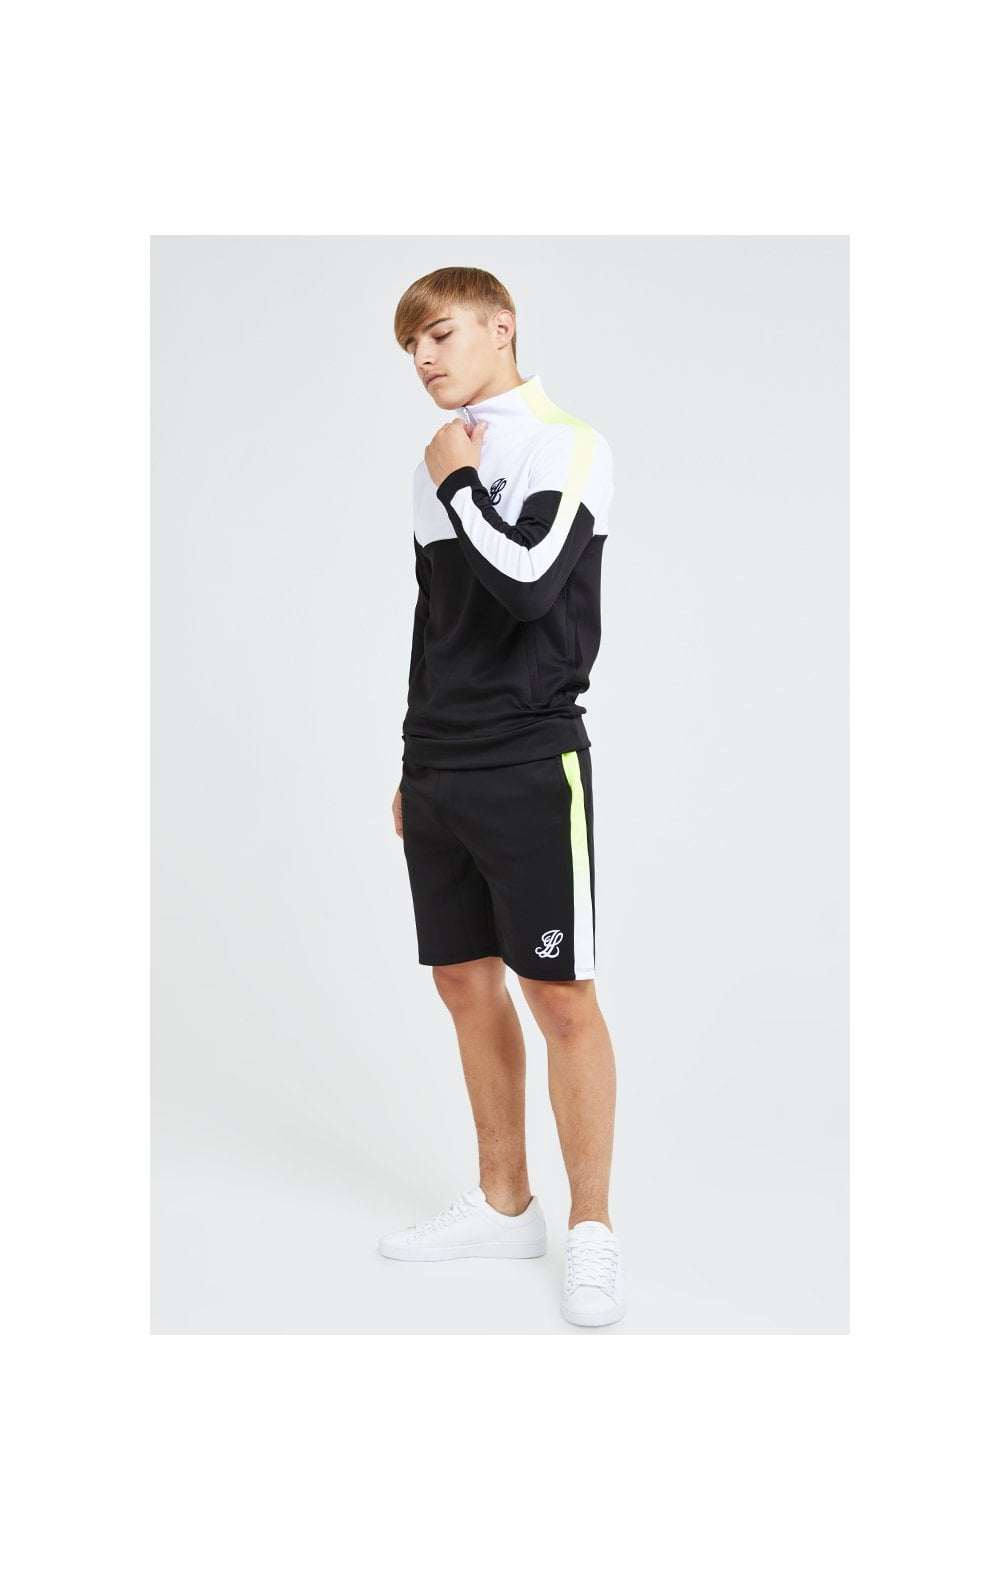 Load image into Gallery viewer, Illusive London Fade Funnel Neck Hoodie - Black,White & Neon Yellow (6)